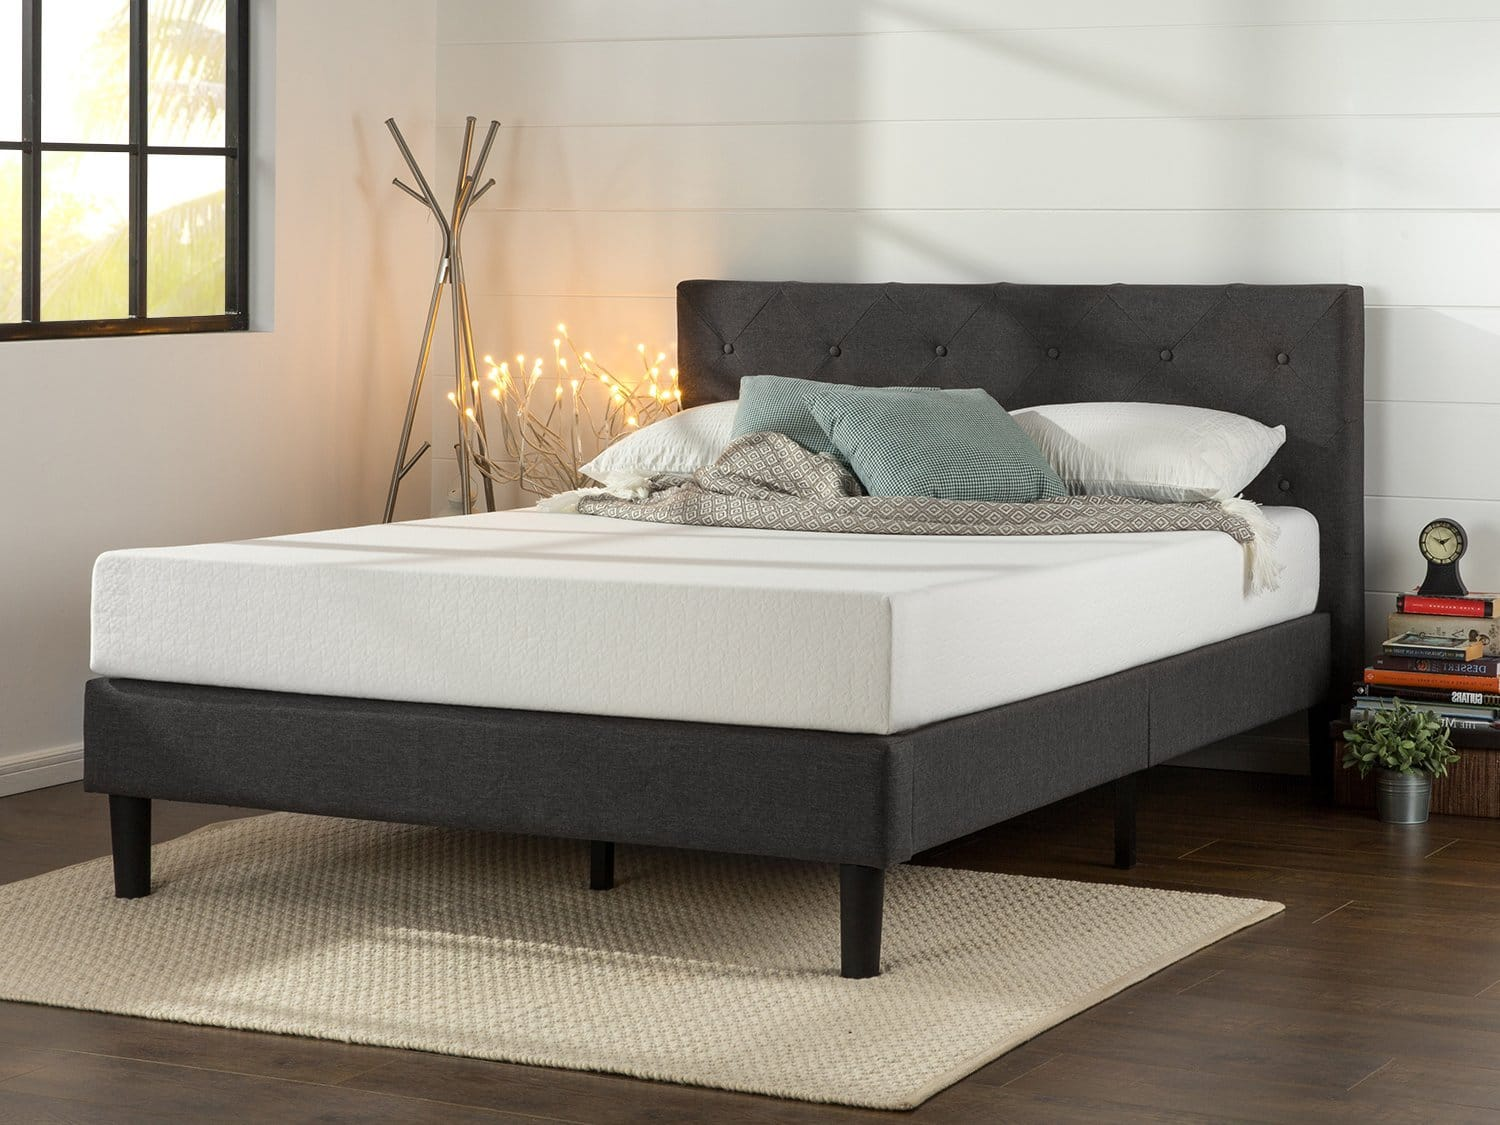 Awesome Zinus Upholstered Diamond Stitched Platform Bed Queen Slickdeals net